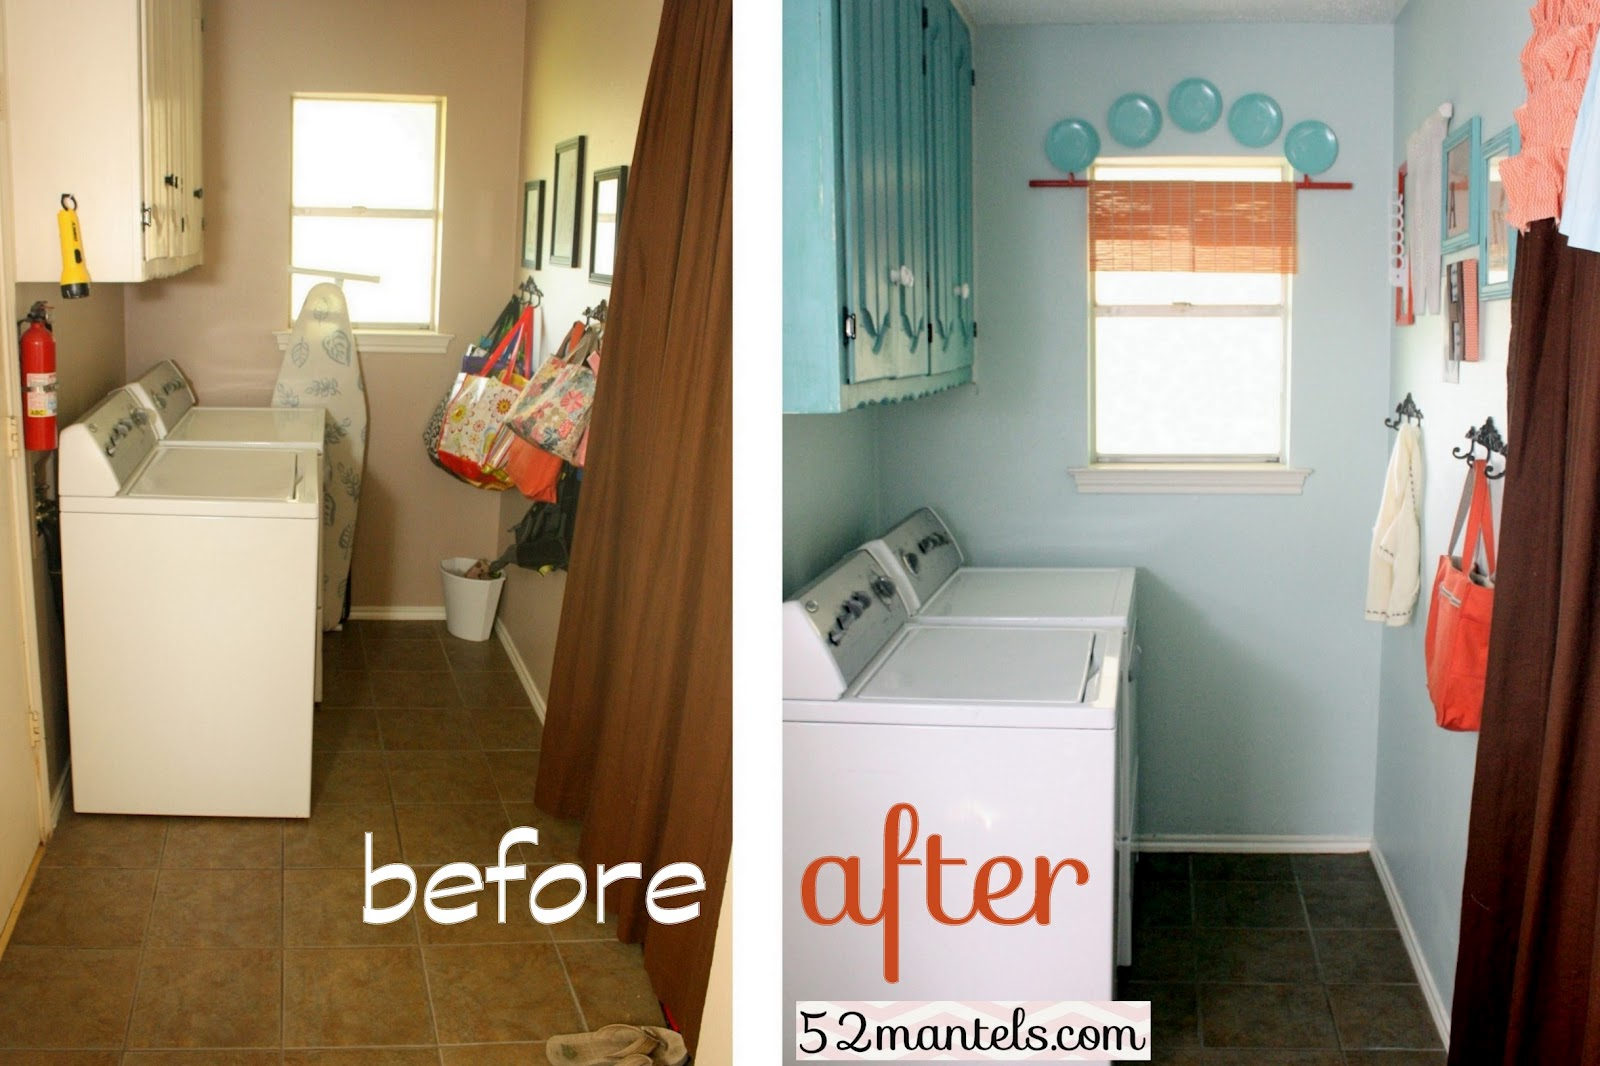 52 Mantels: Laundry Room Makeover!